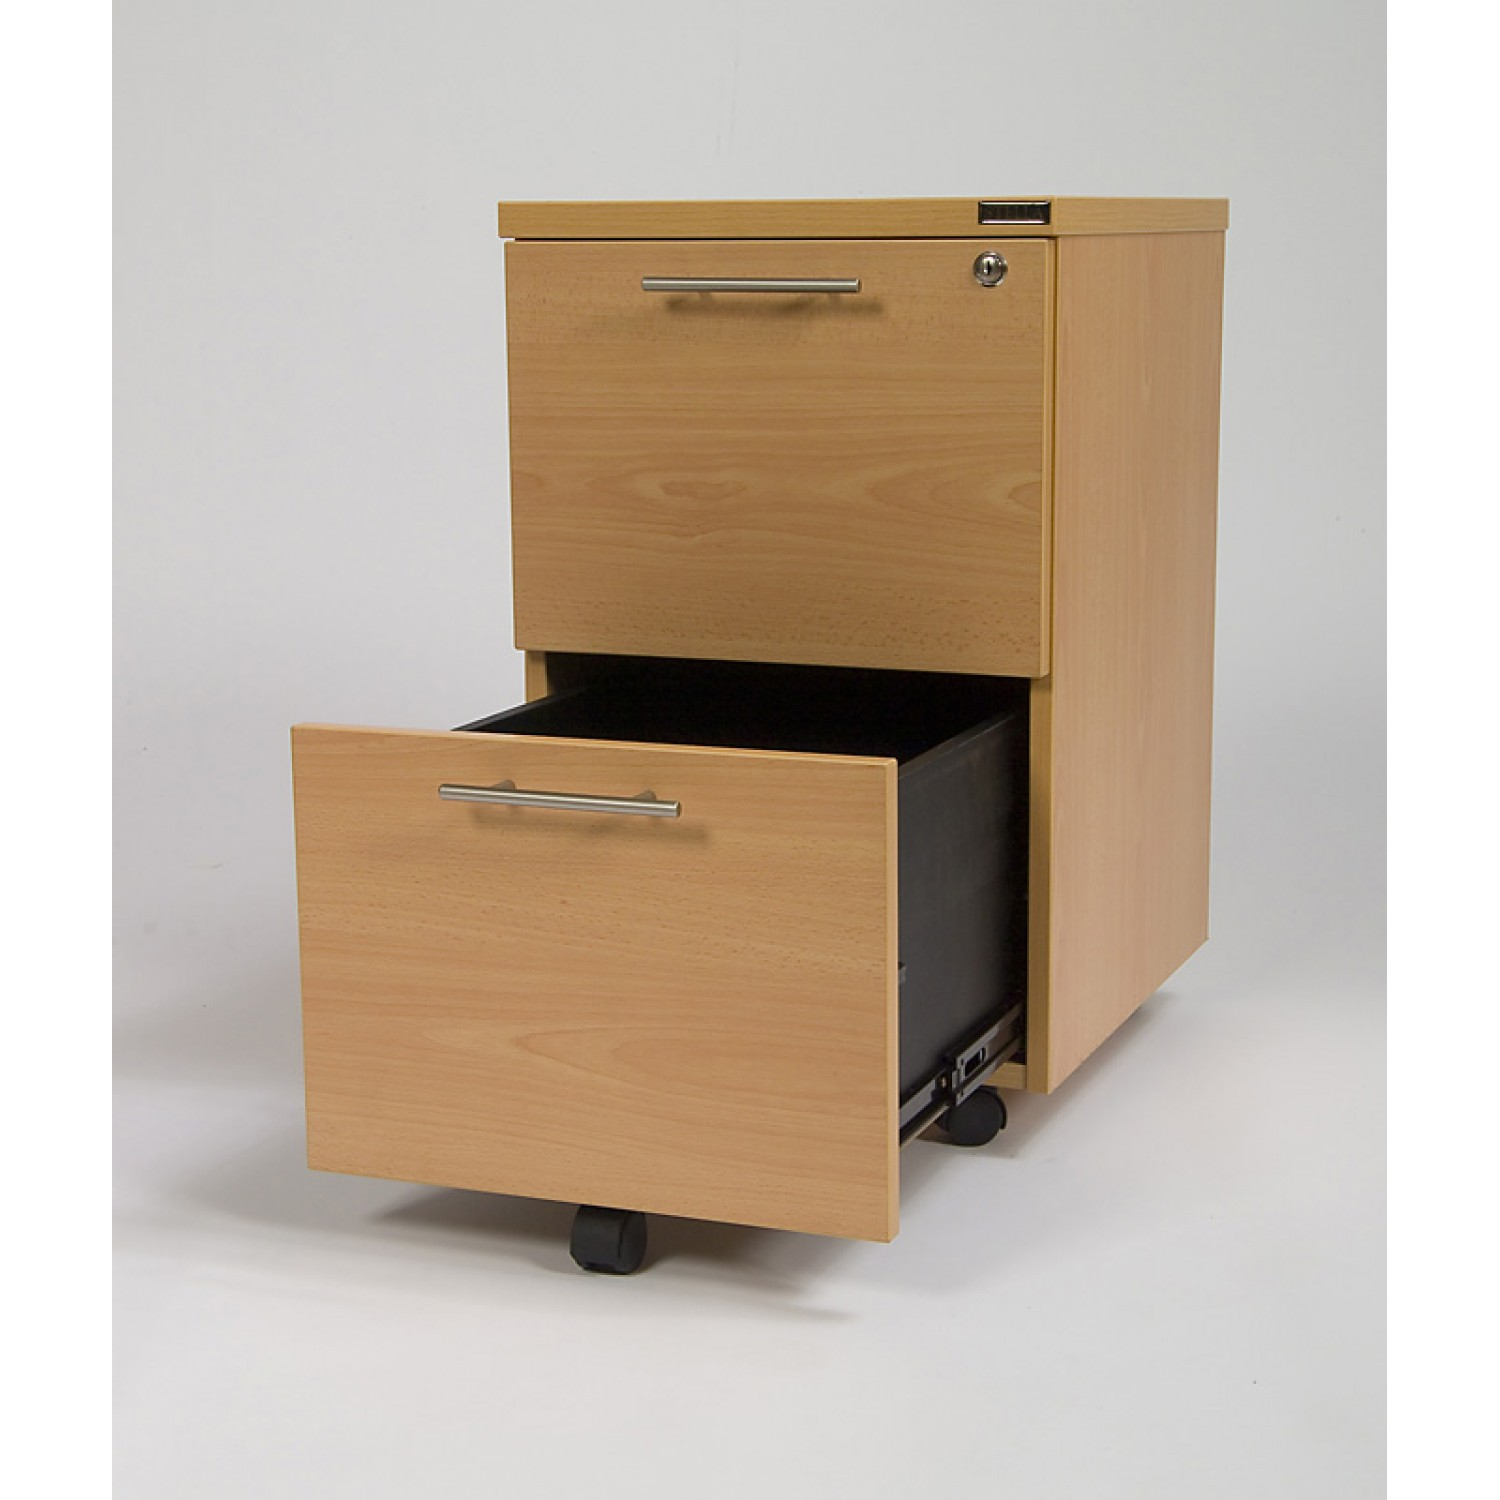 Mobile pedestal pilot office furniture since 1990 for Mobile furniture